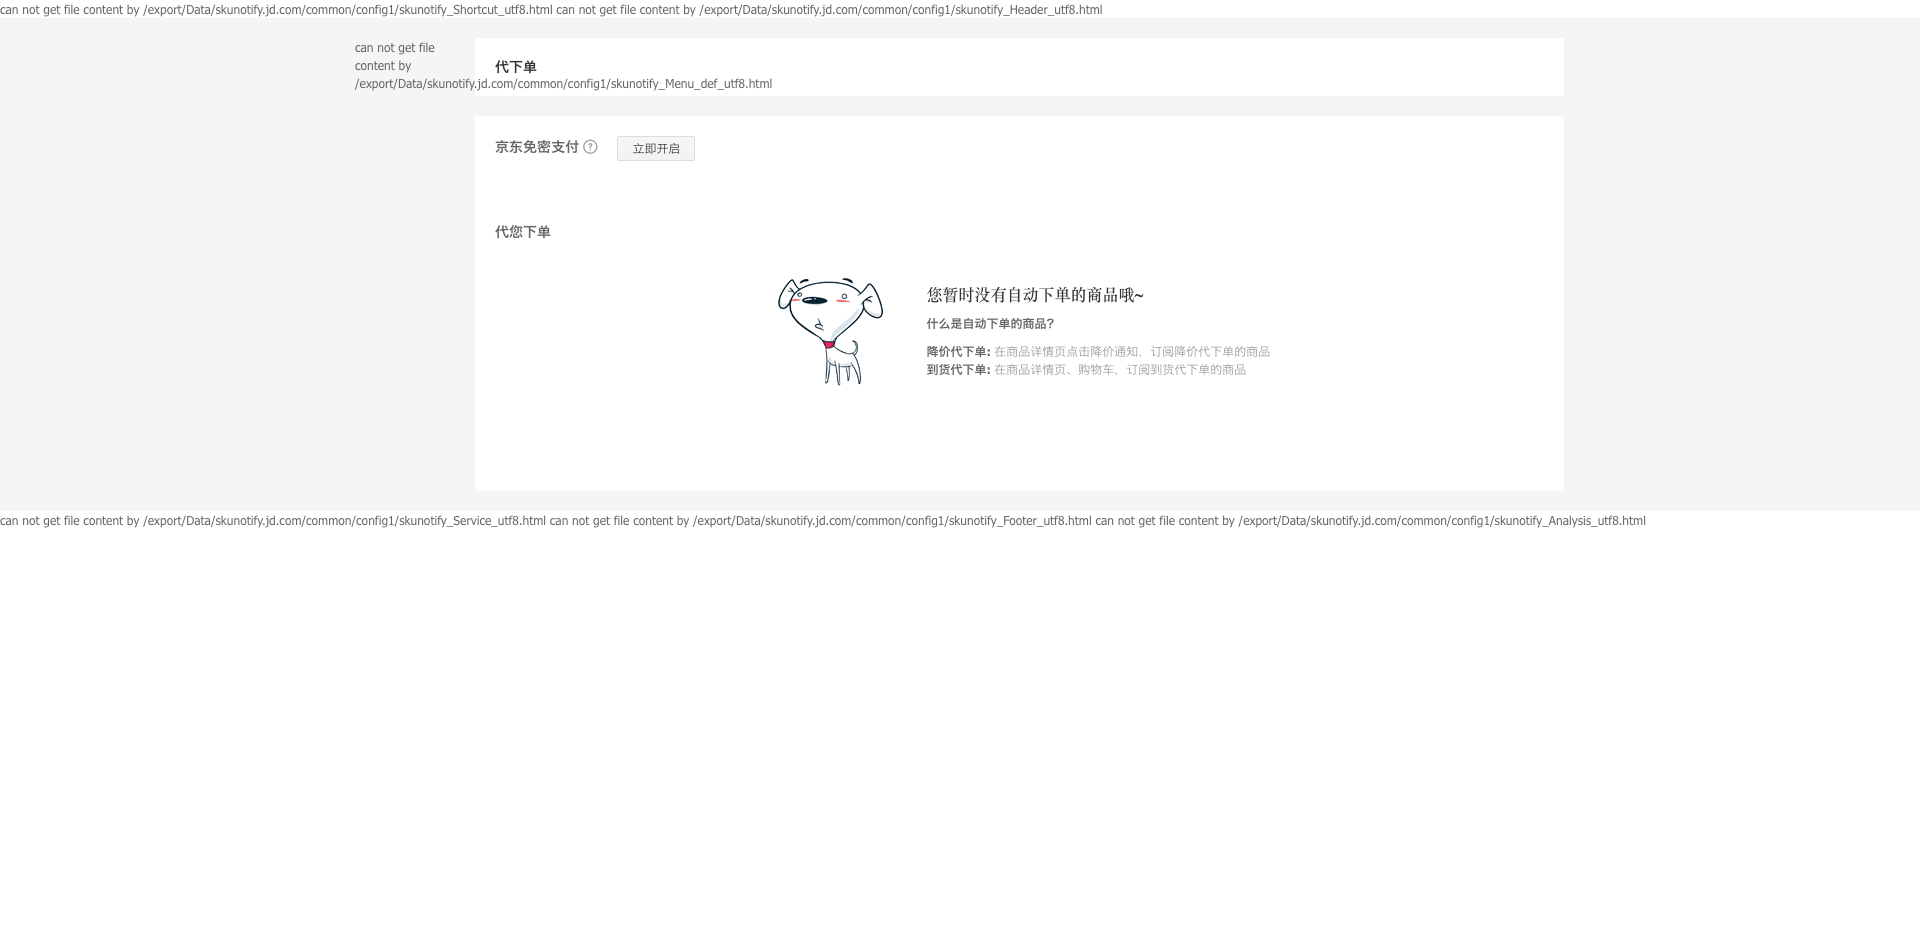 screencapture-skunotify-jd-userTouchSub-query-action-2019-07-30-20_54_53.png